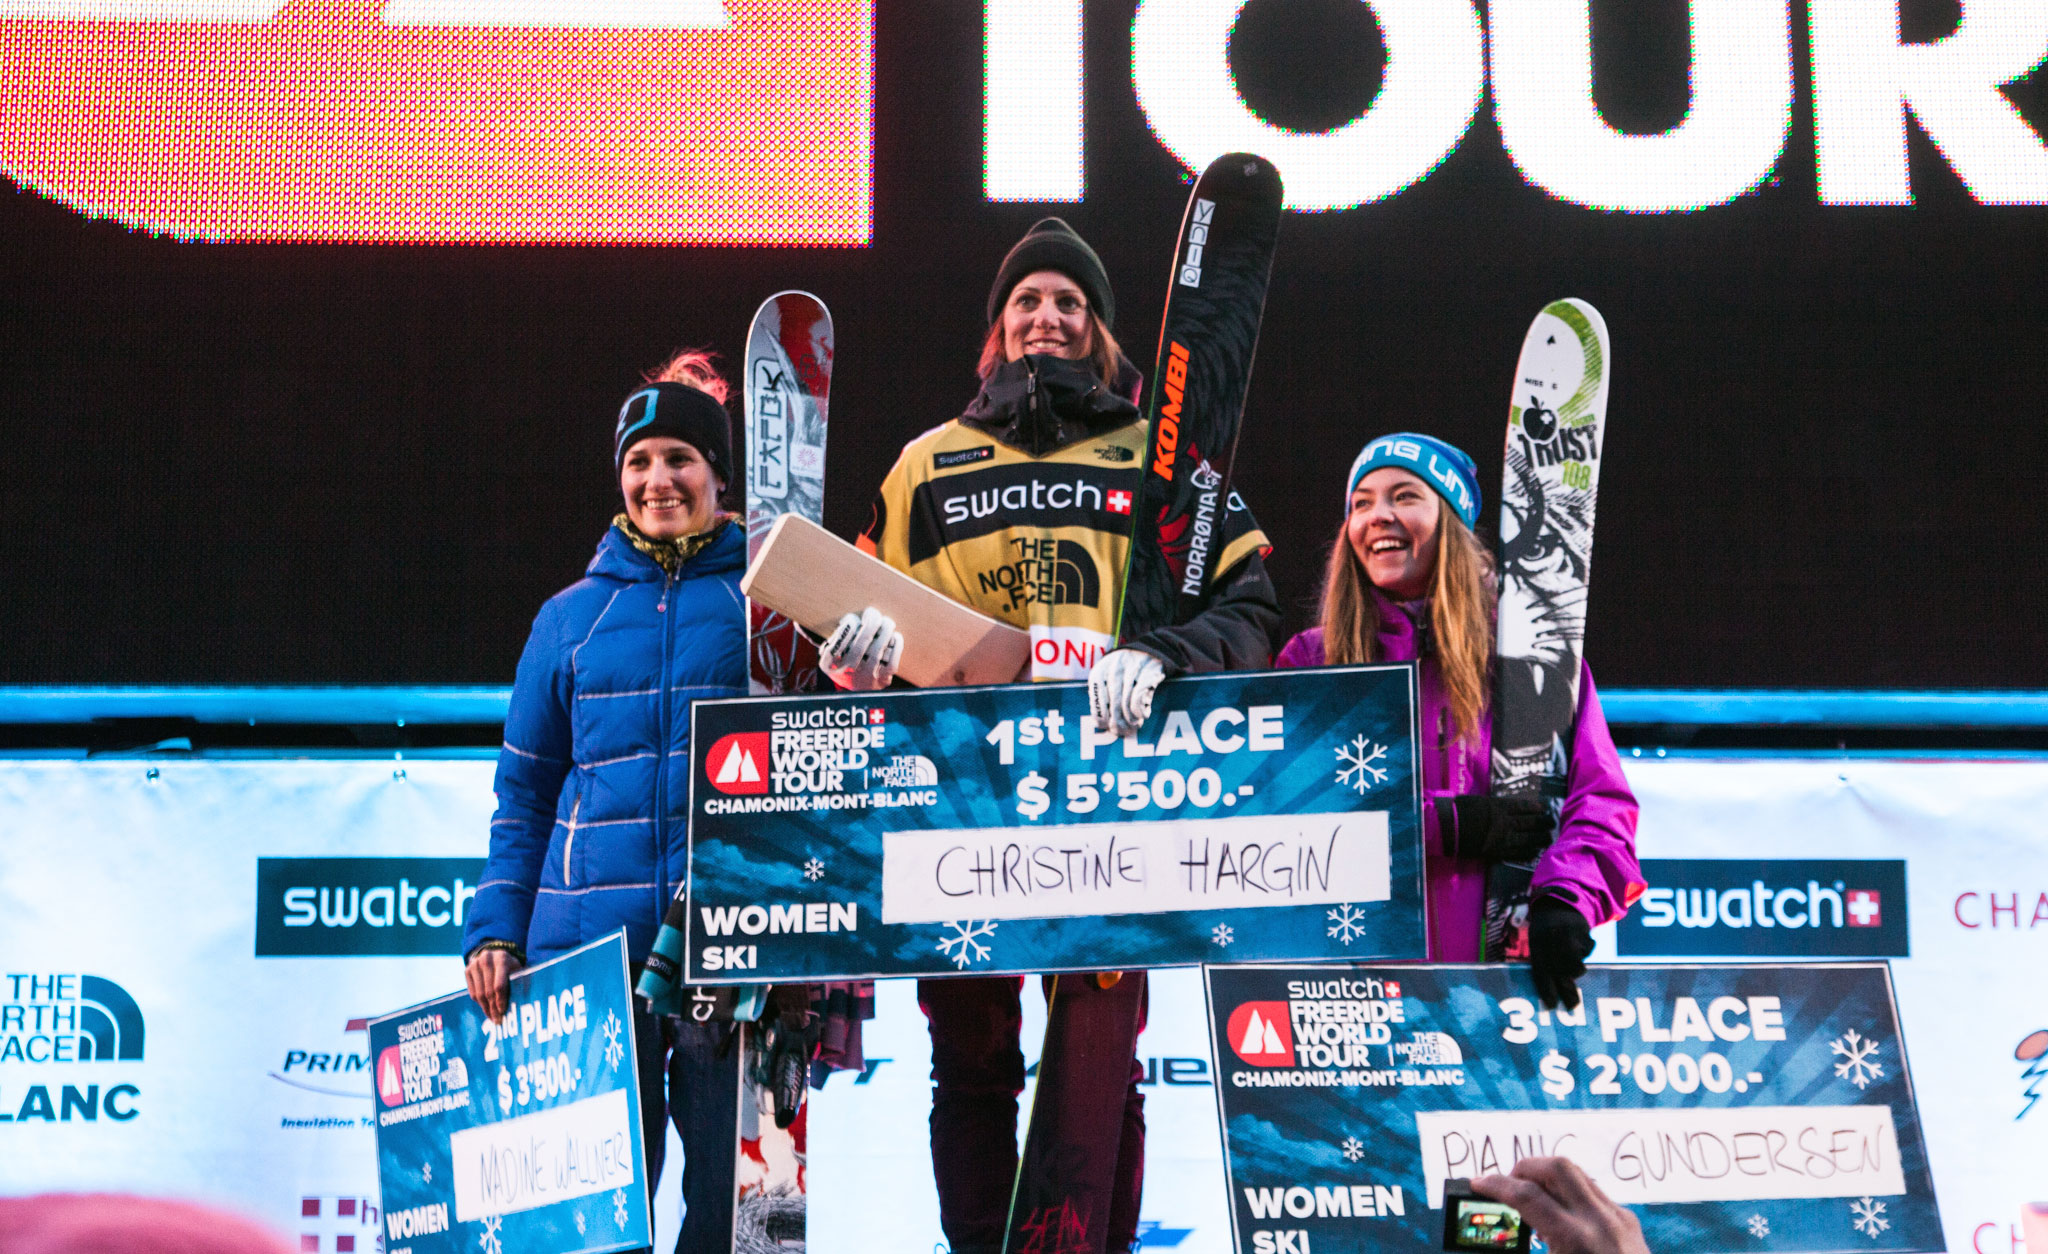 The women's podium at the Freeride World Tour in Chamonix: Christine Hargin, Nadine Wallner, and Pia Nic Gunderson.